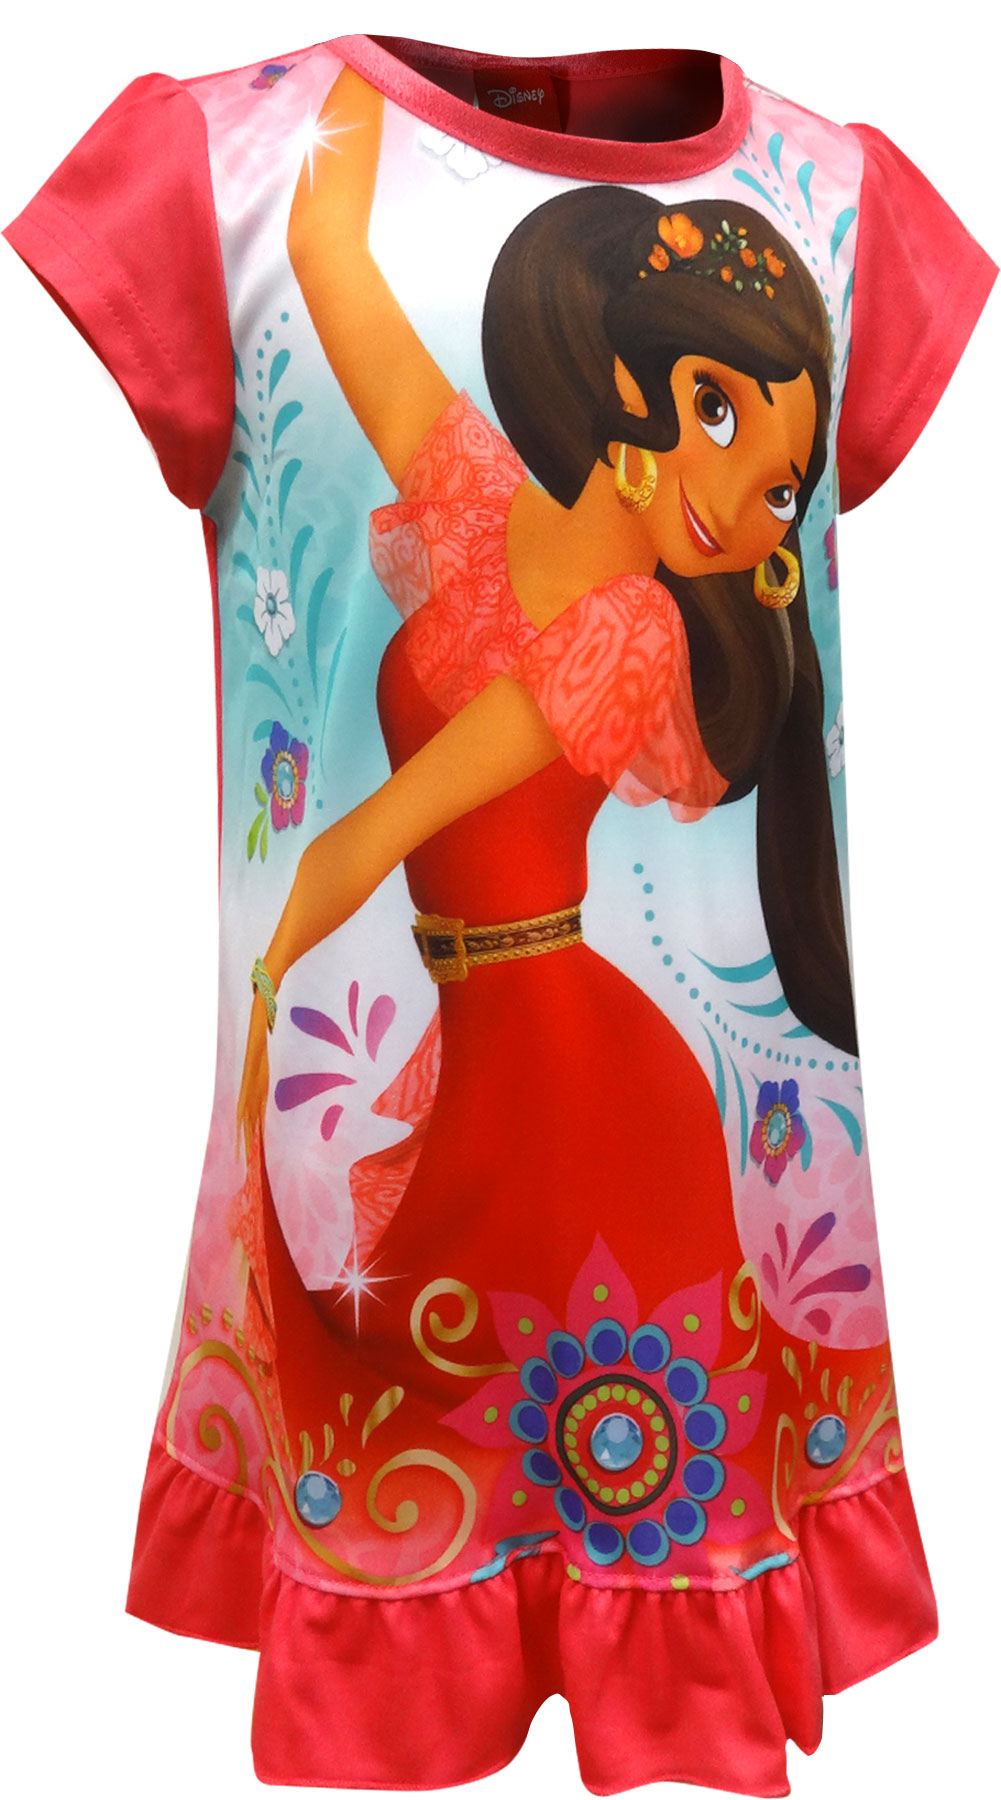 Image of Disney Elena Of Avalor Dancing Fun Toddler Nightgown for girls